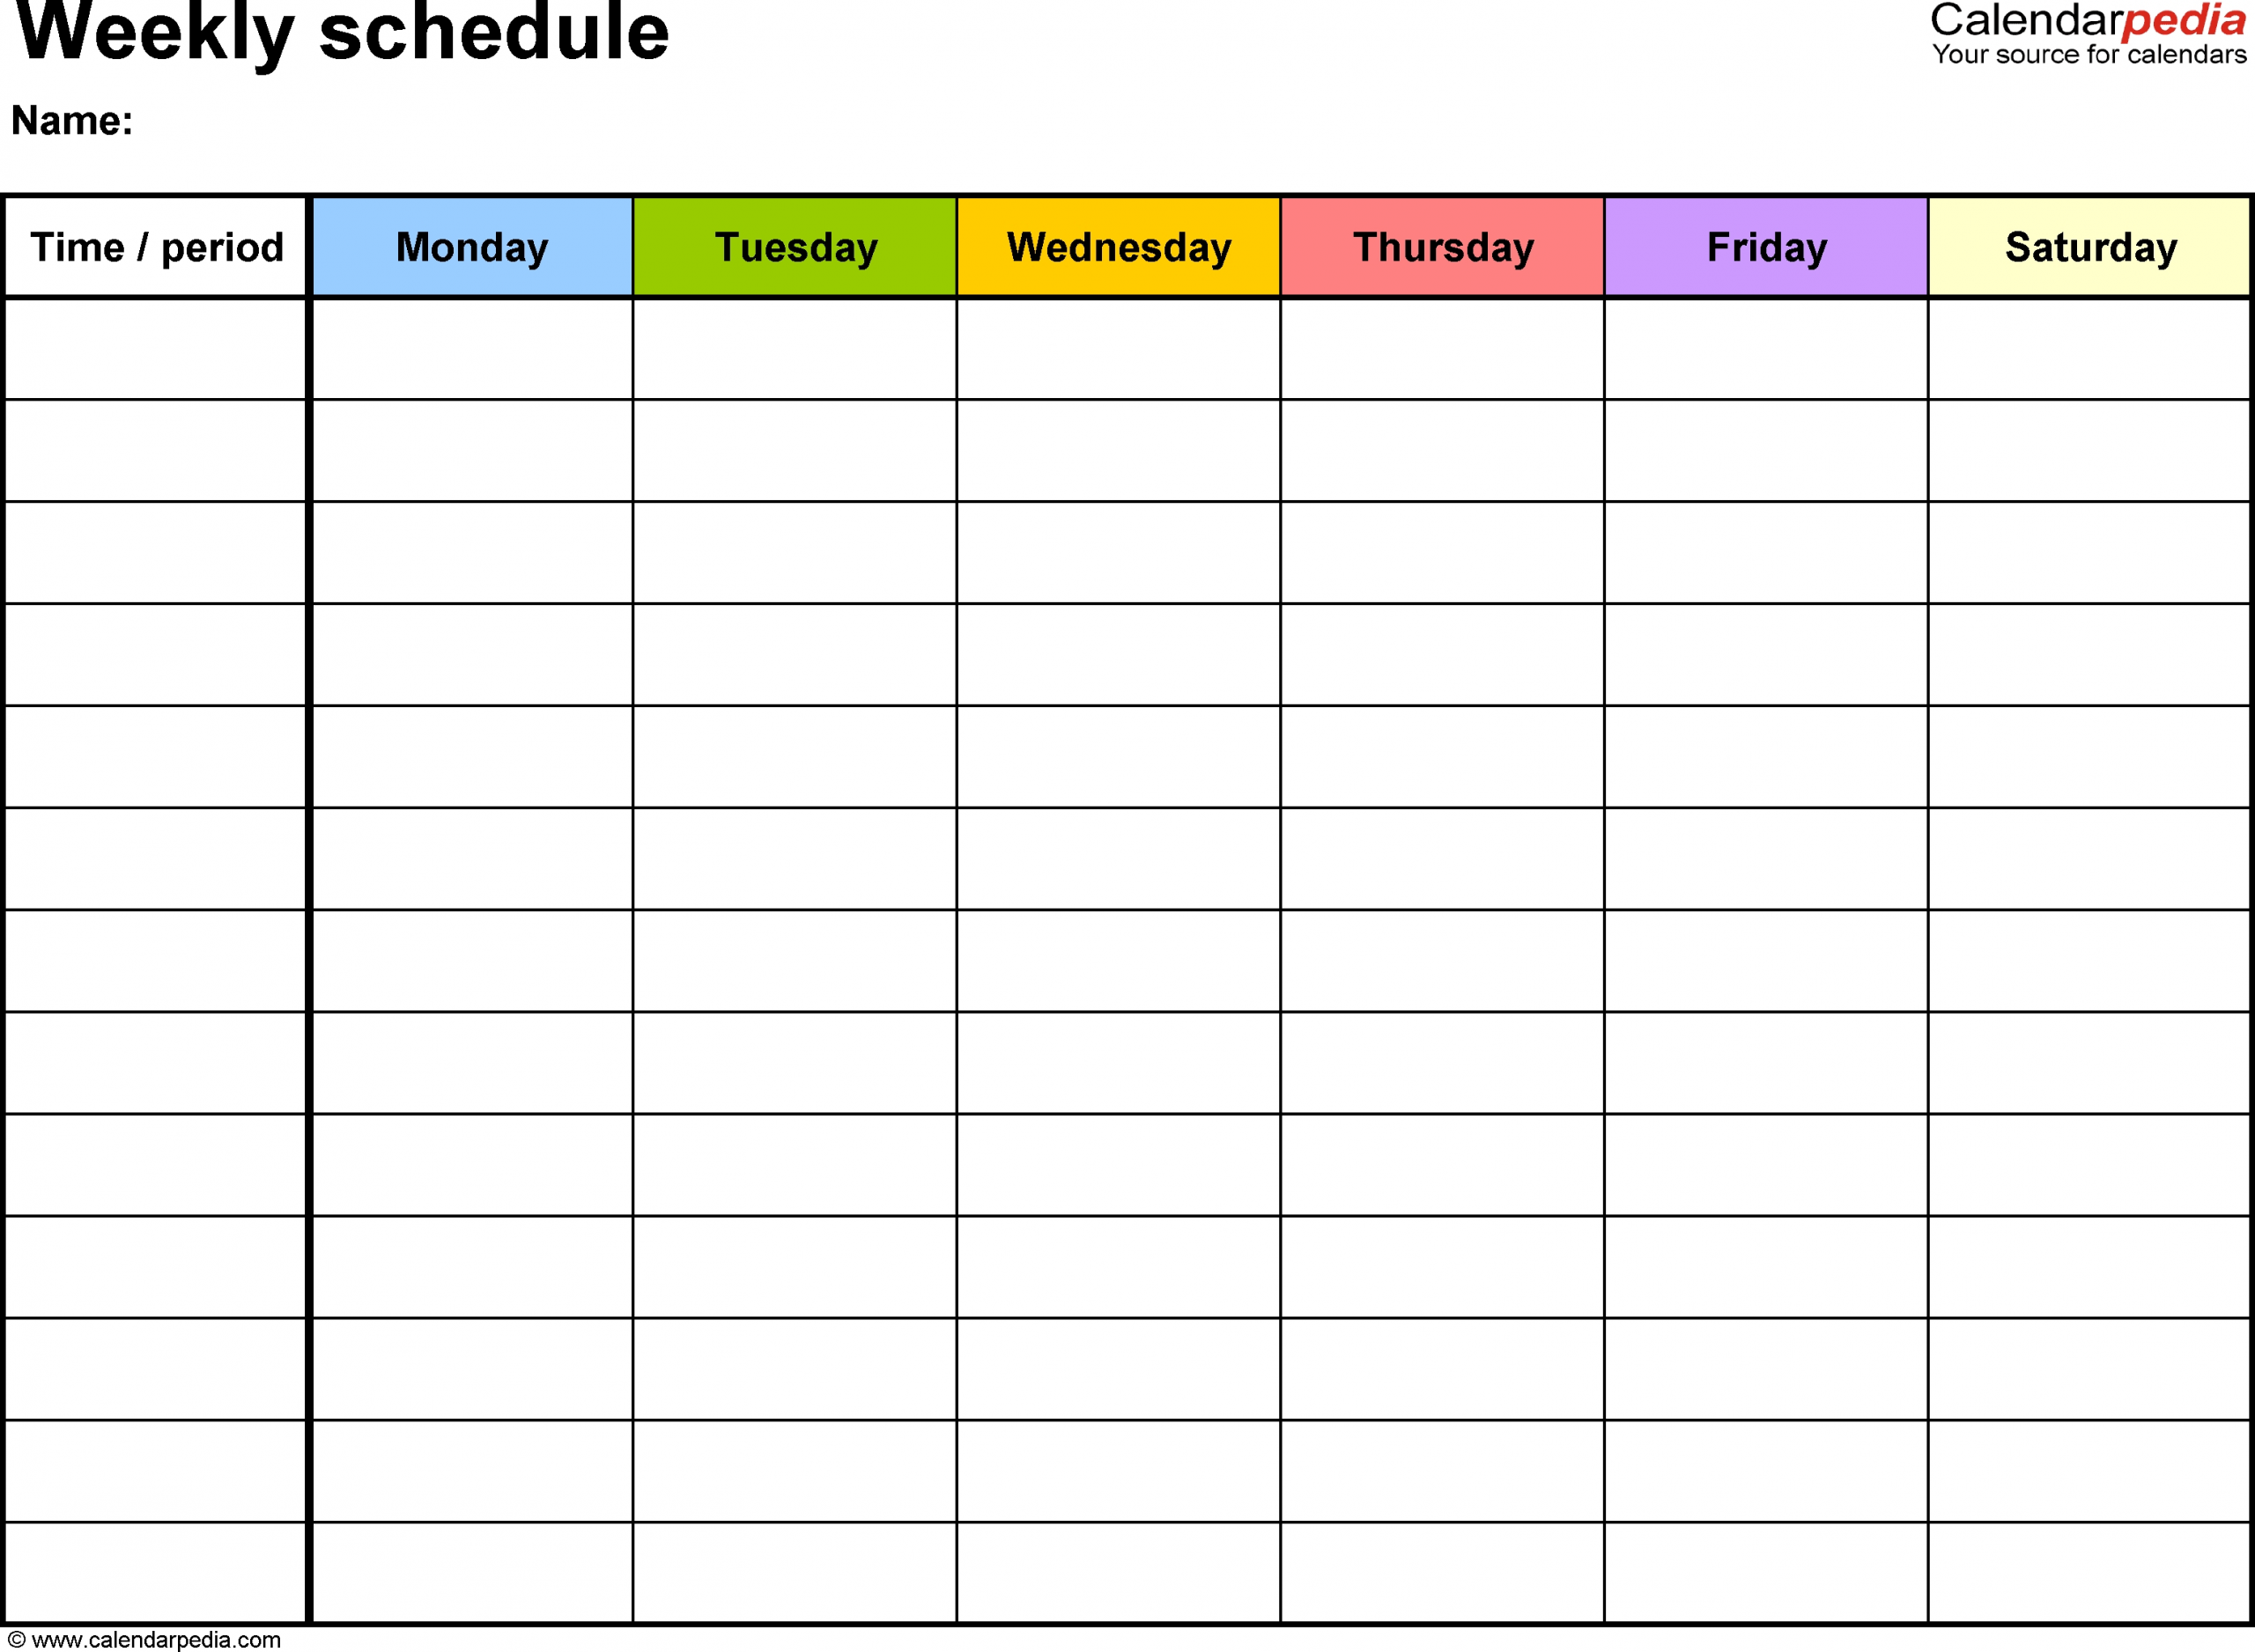 Monday To Friday Blank Calendar Printable | Calendar Free Printable Monday To Friday Calendar